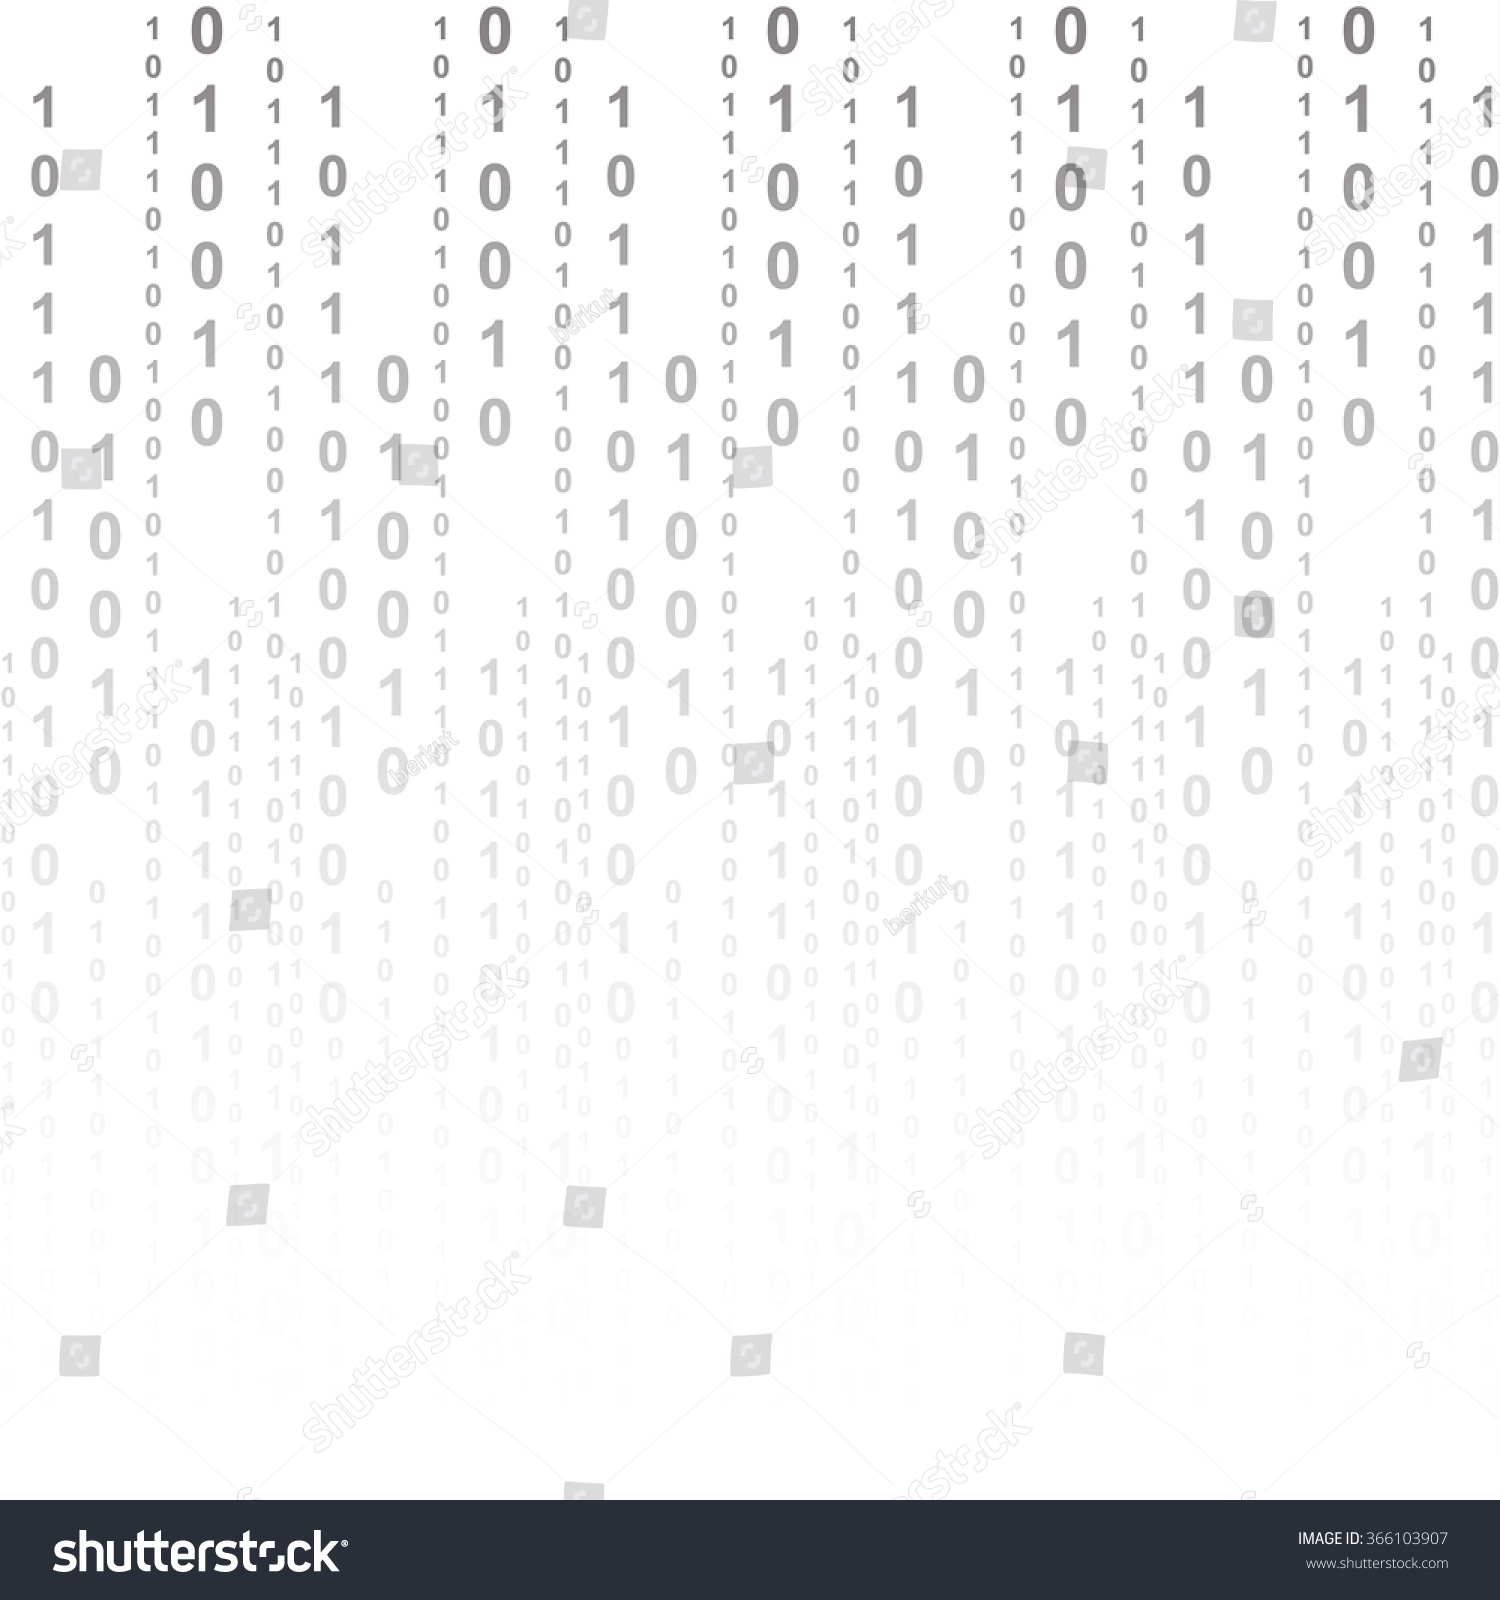 Flat Binary Code Screen Listing Table Cypher Stock Vector Illustration 366103907 : Shutterstock